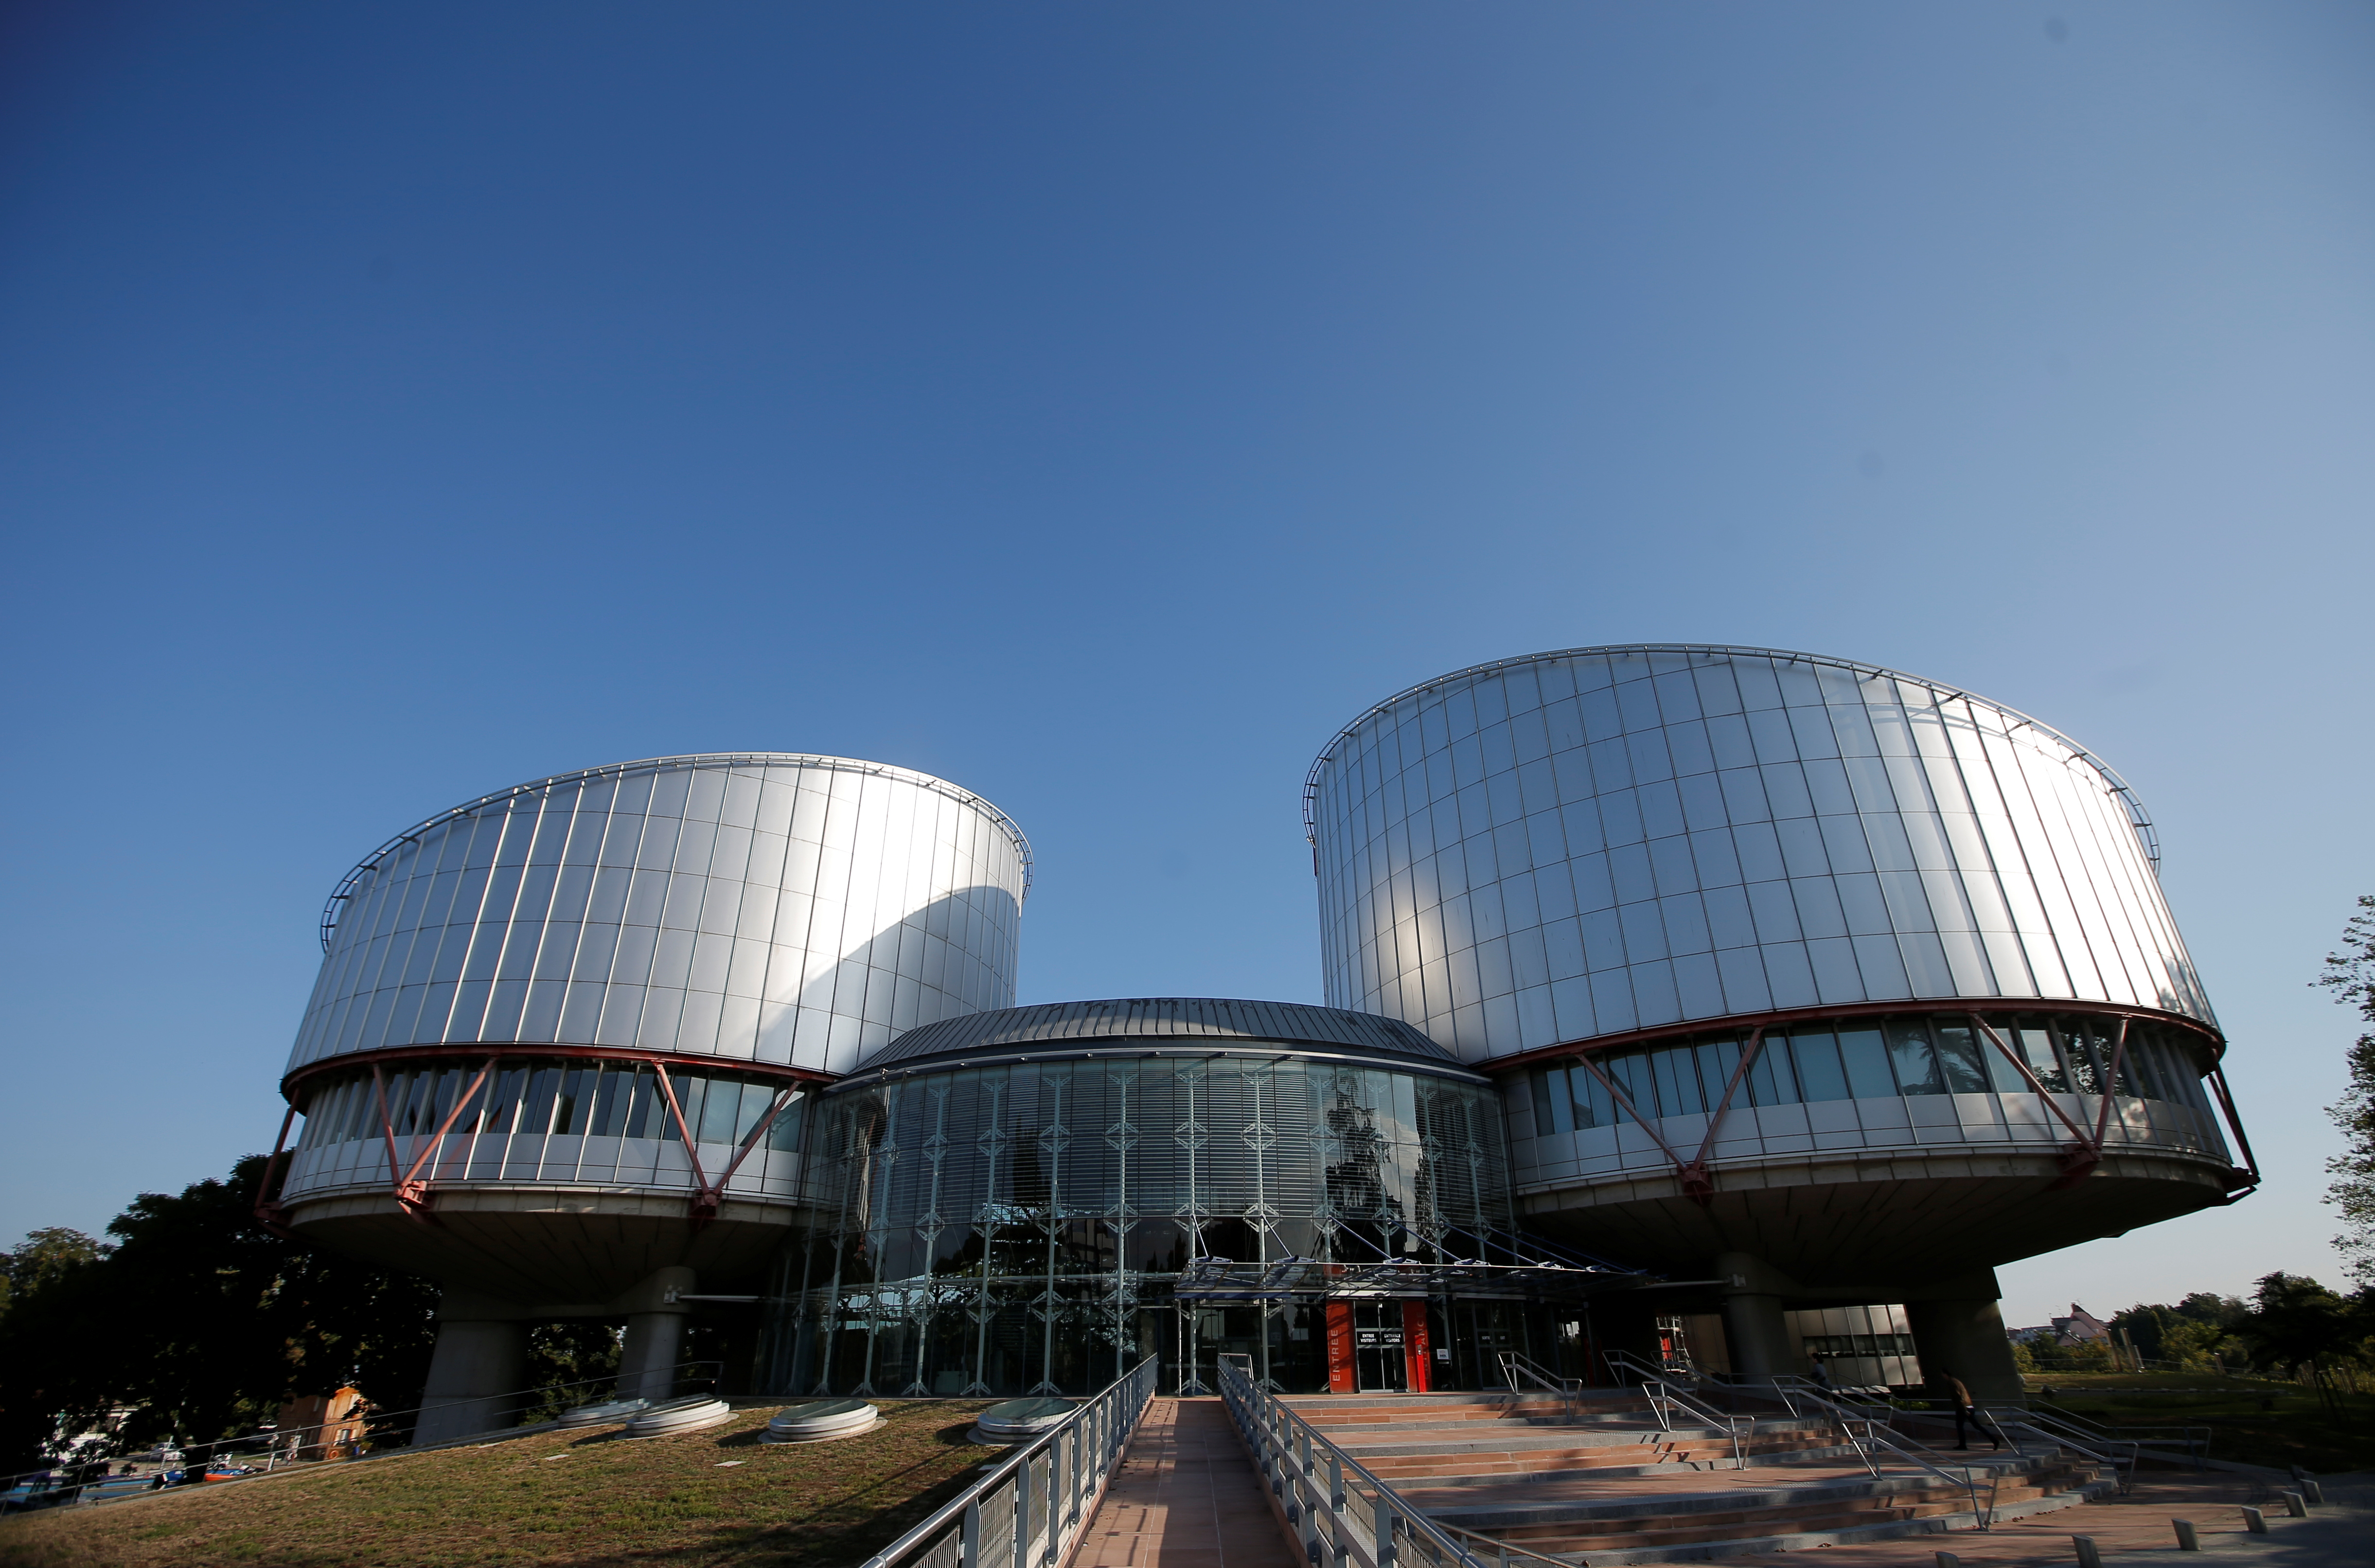 The building of the European Court of Human Rights is seen ahead of the start of a hearing concerning Ukraine's lawsuit against Russia regarding human rights violations in Crimea, in Strasbourg, France, September 11, 2019.  REUTERS/Vincent Kessler